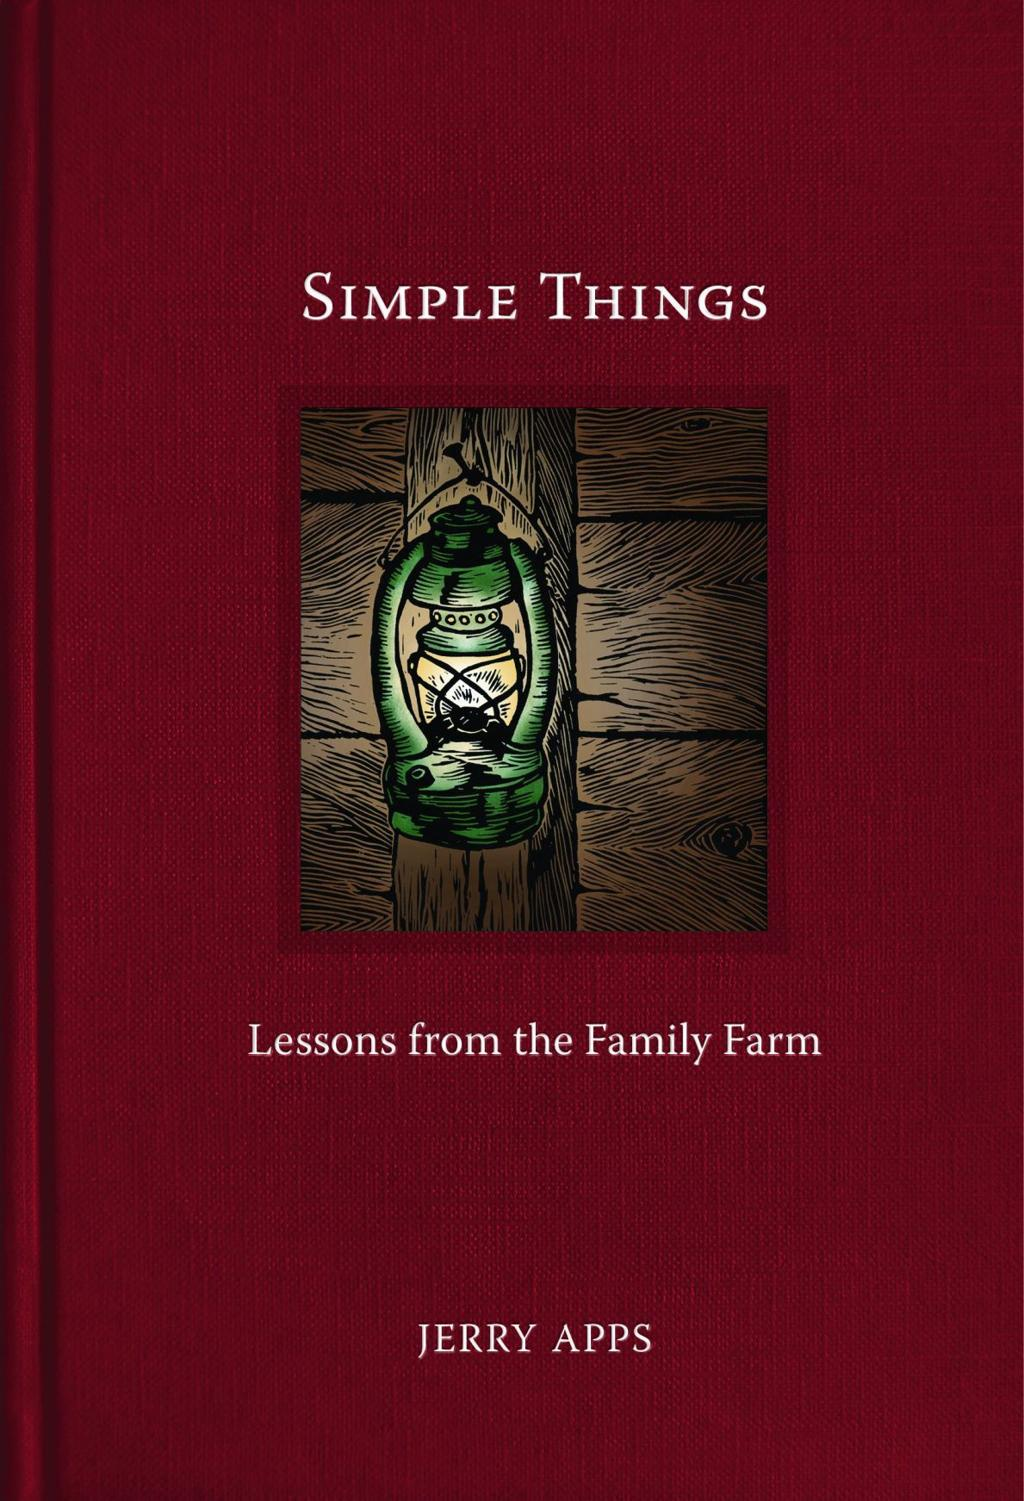 Bookworm: 'Simple things' recalls mid-century farming